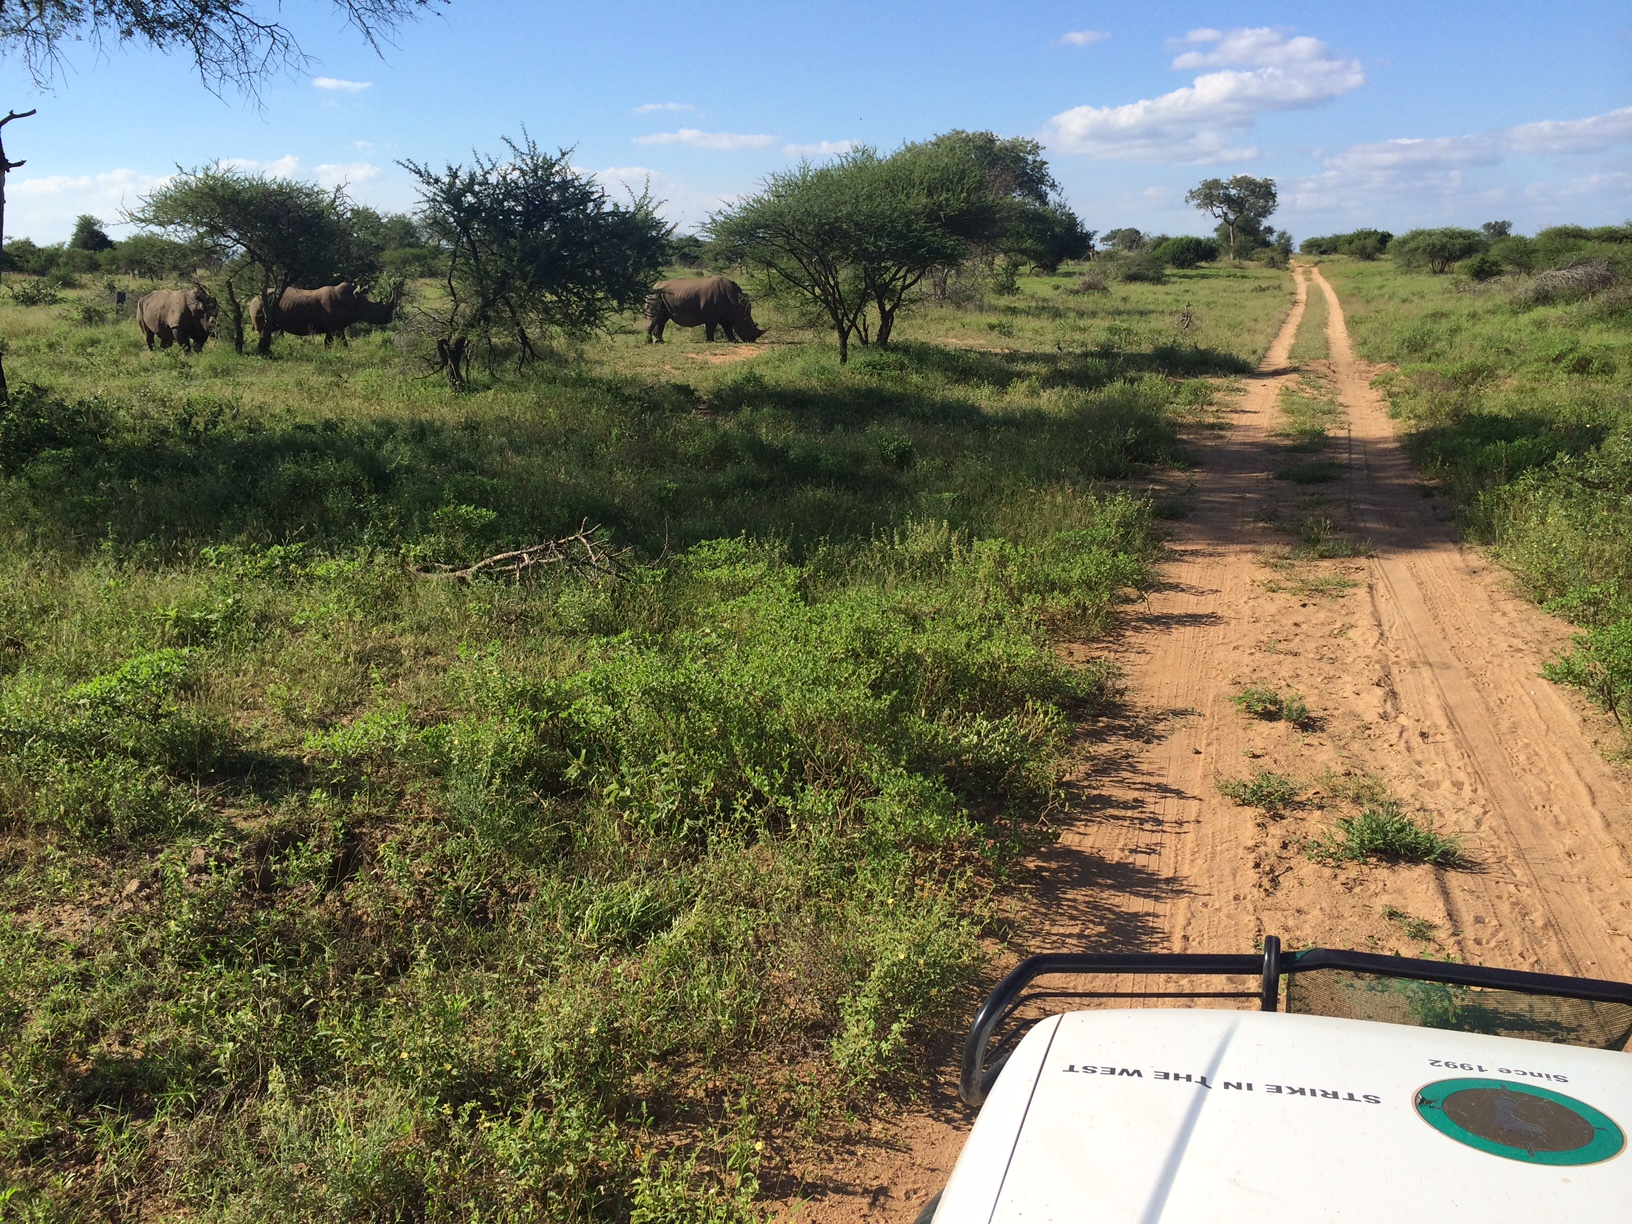 Checking up, while on patrol, on a group of rhinos who frequent a spot near a road.